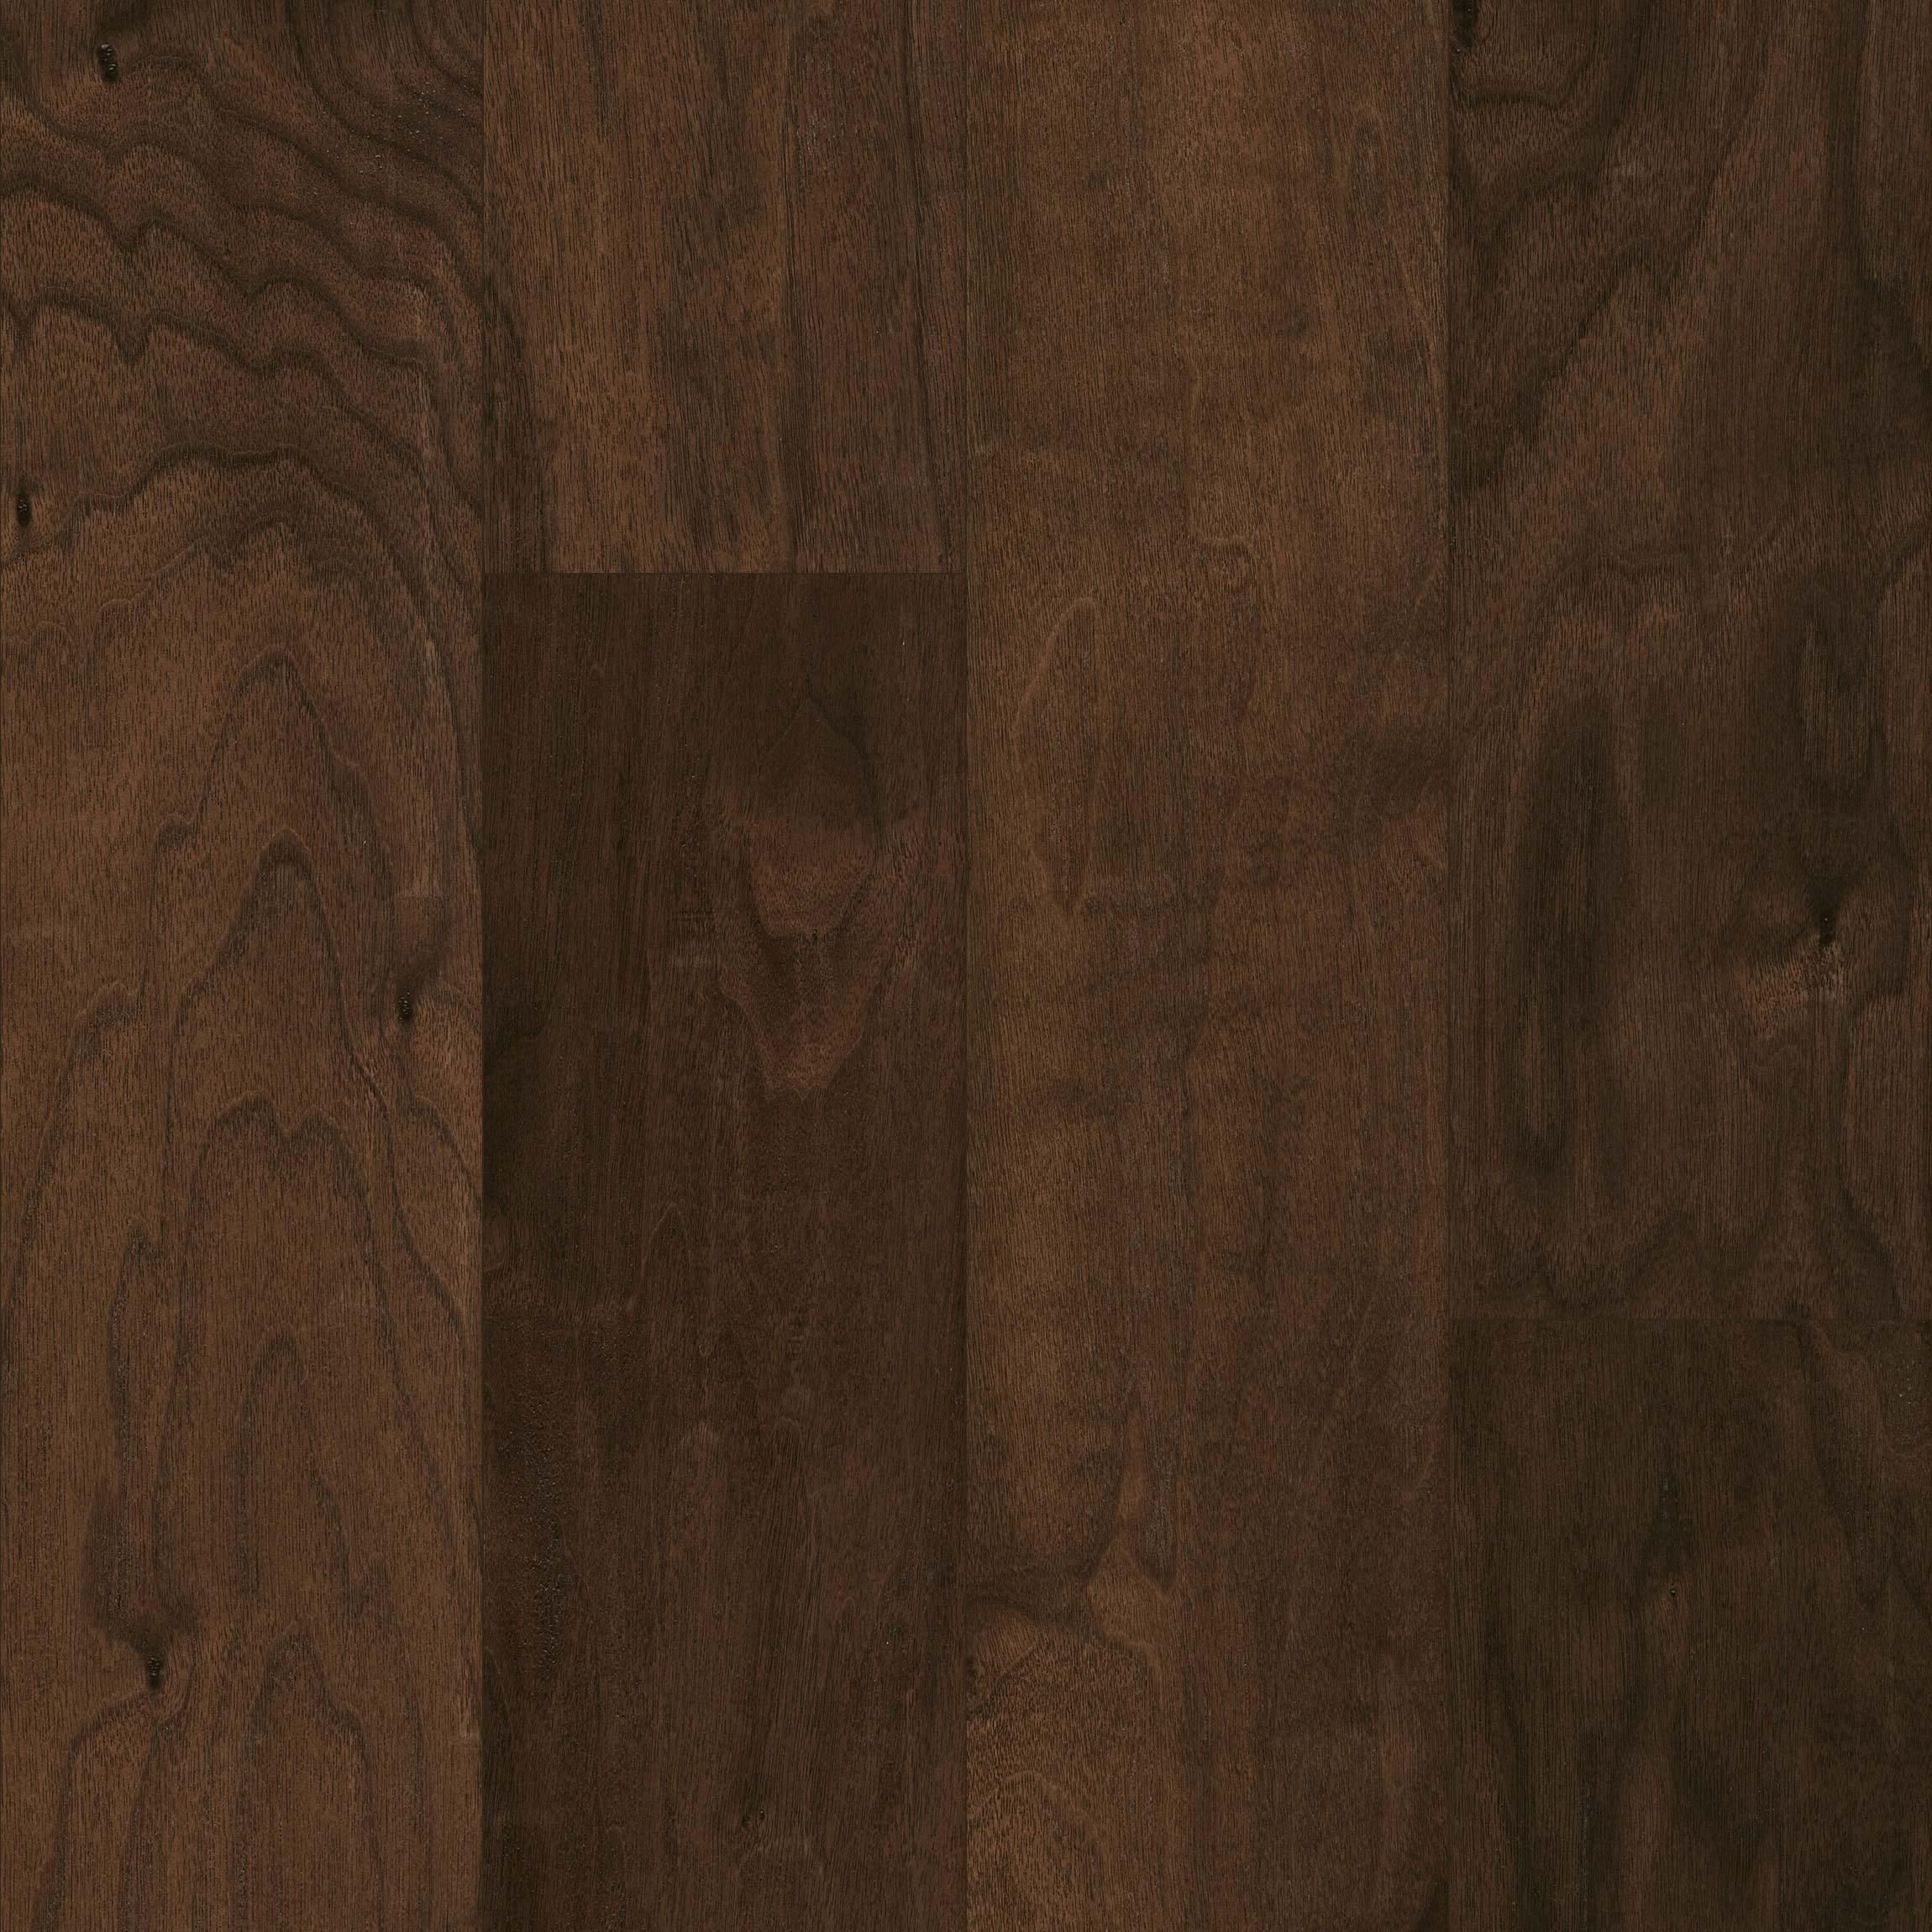 Armstrong American Scrape Premium Engineered Harvest Time Walnut 5 3 4 X 1 2 Hardwood Eas604 Hardwood Engineered Hardwood Flooring Harvest Time